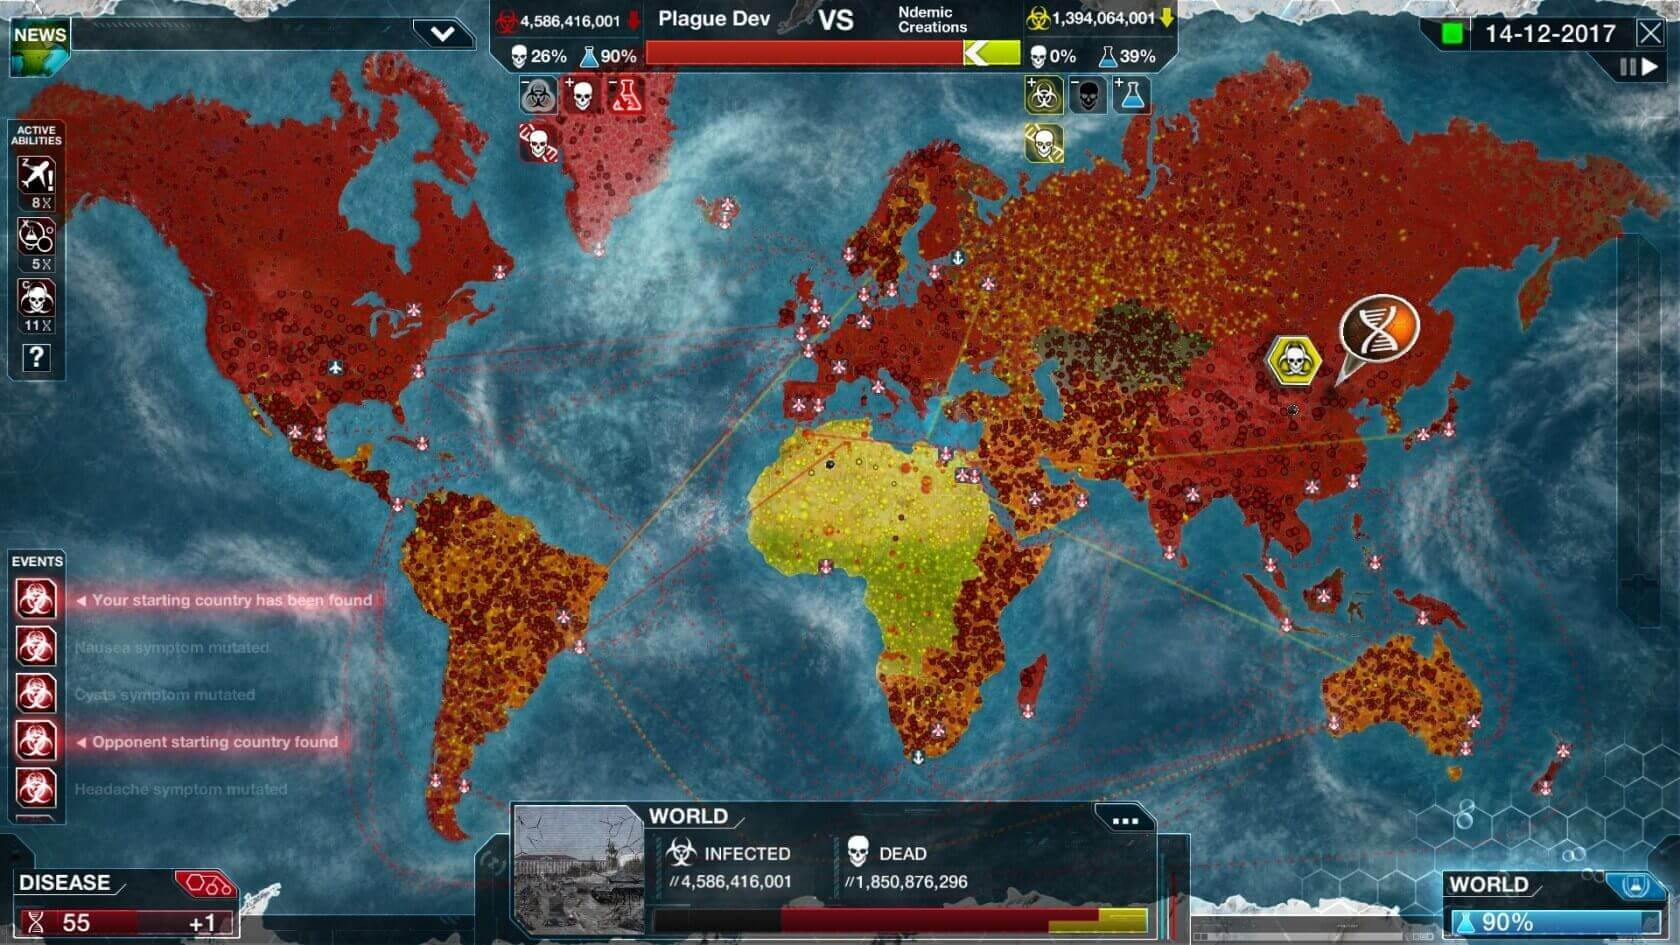 Plague Inc. has been removed from the Chinese App Store - TechSpot